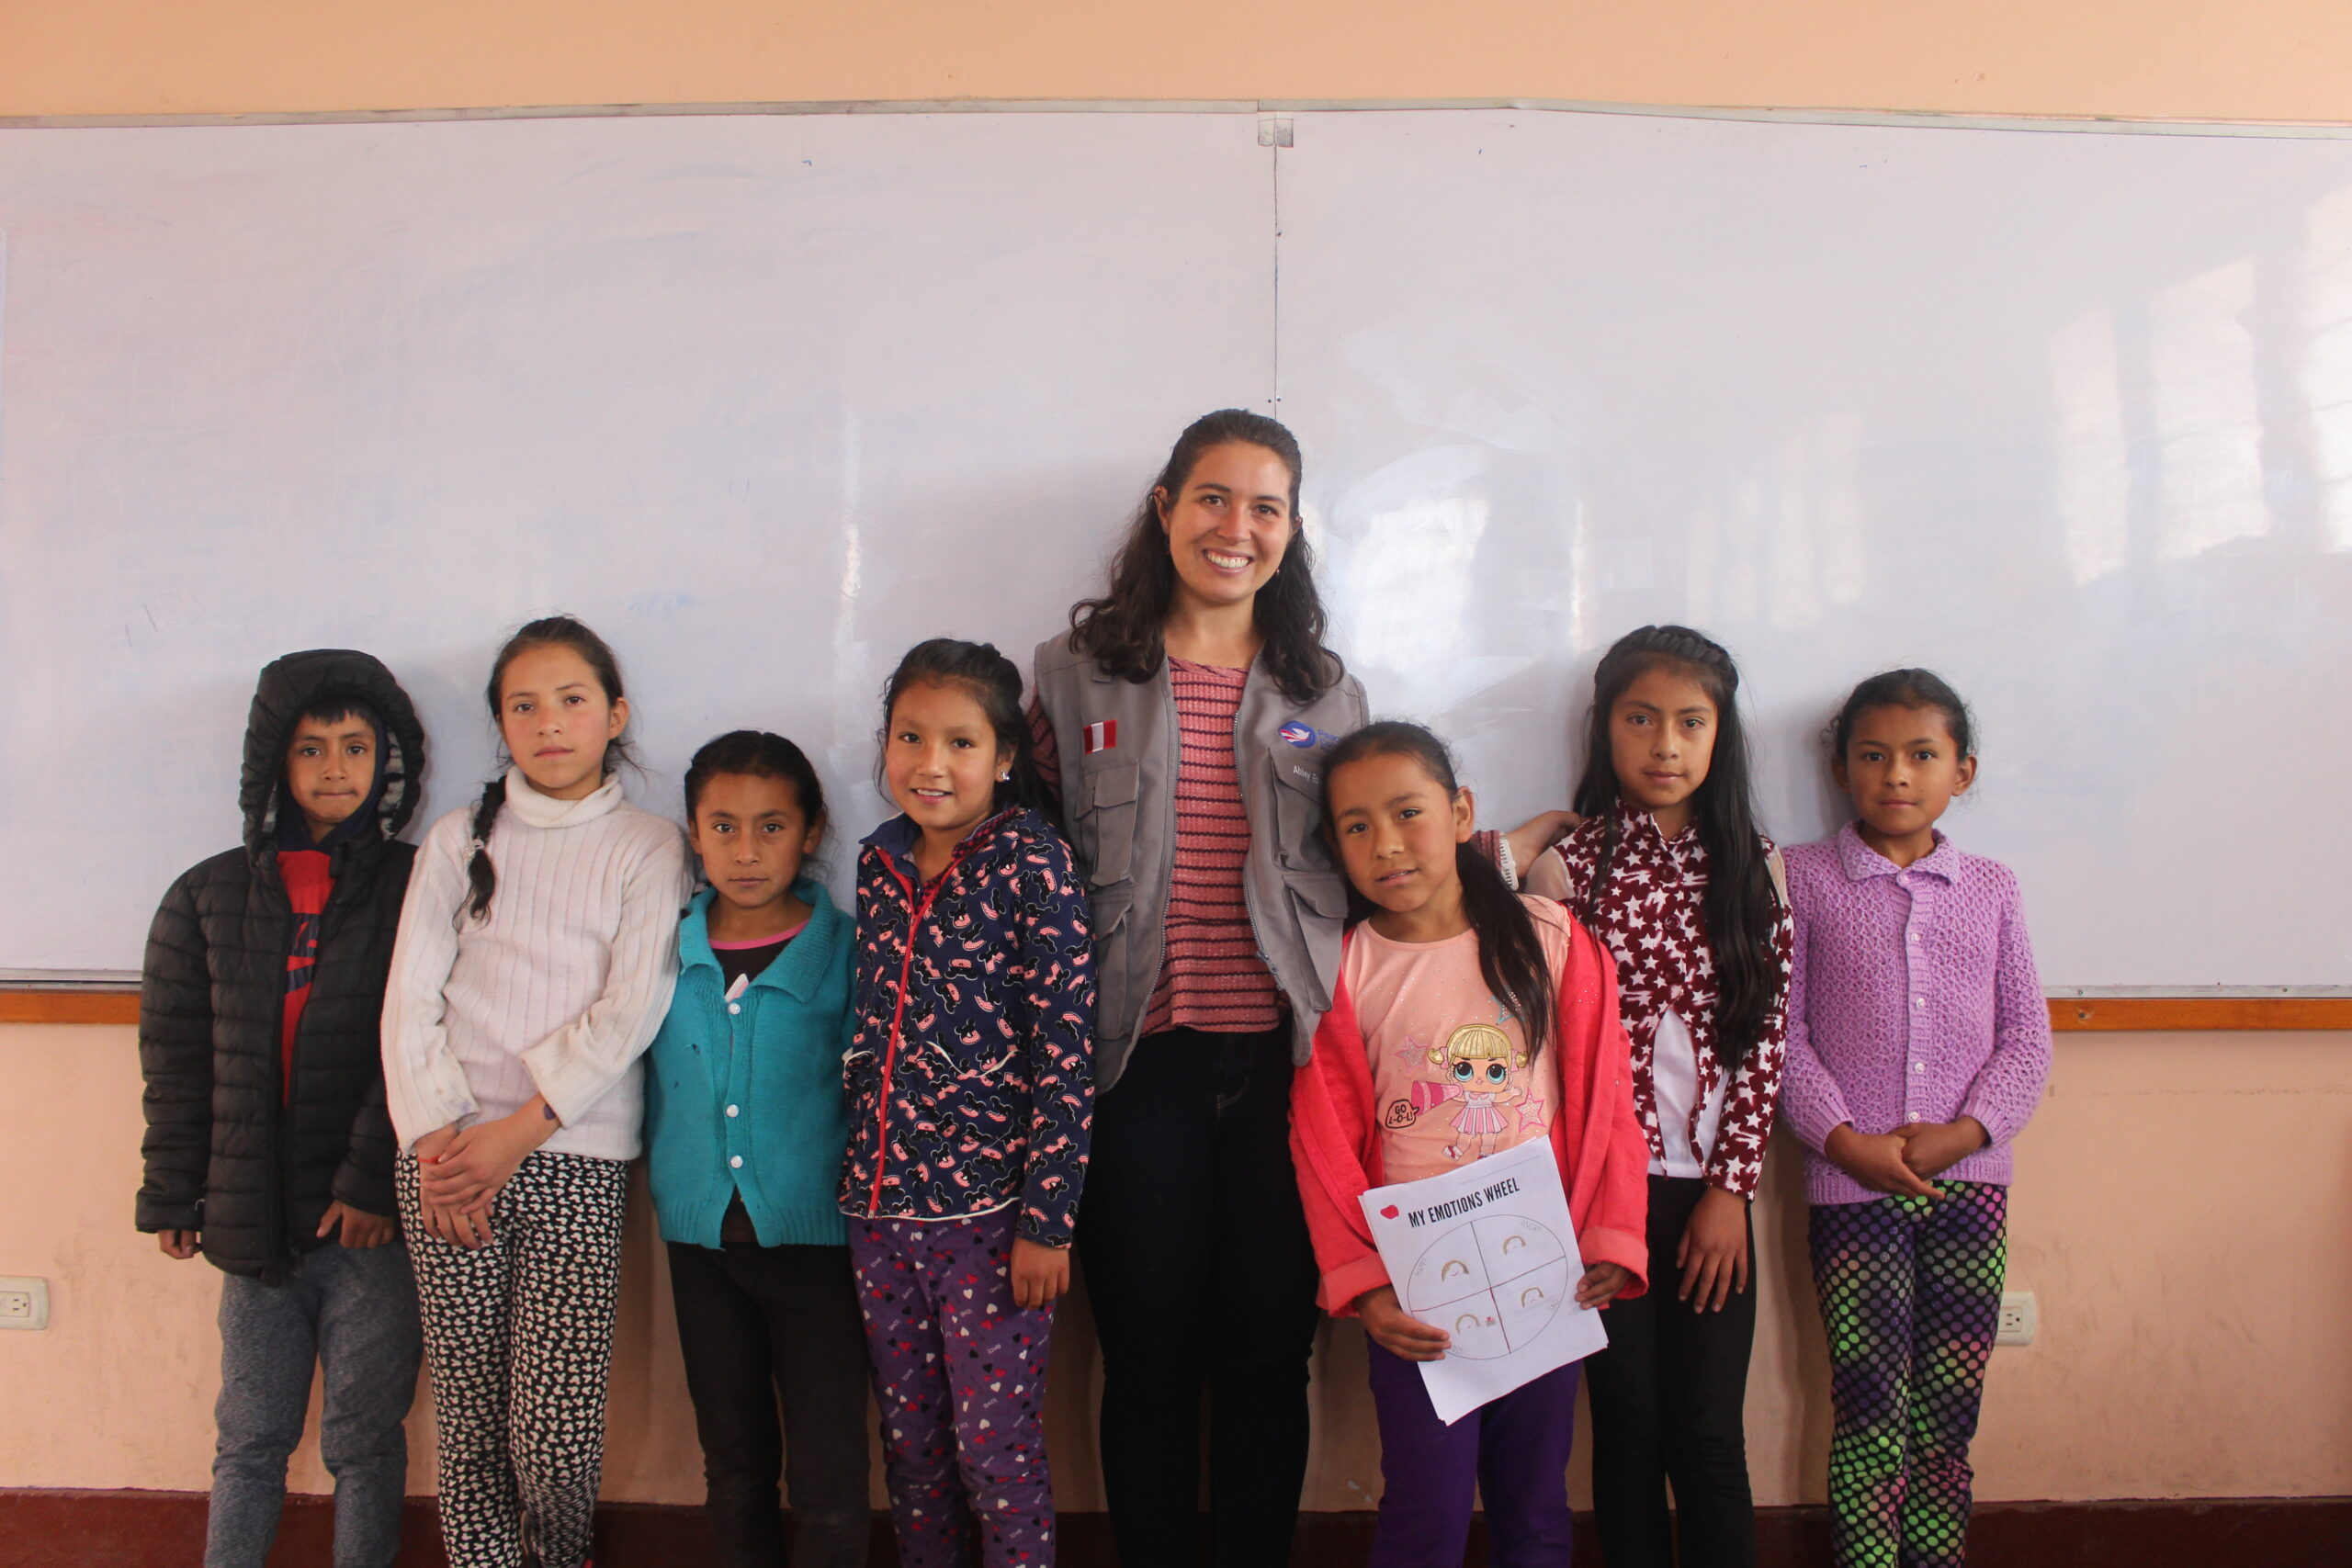 Abbey Edwards and a few students from her English classes. Image credit: Peace Corps Students